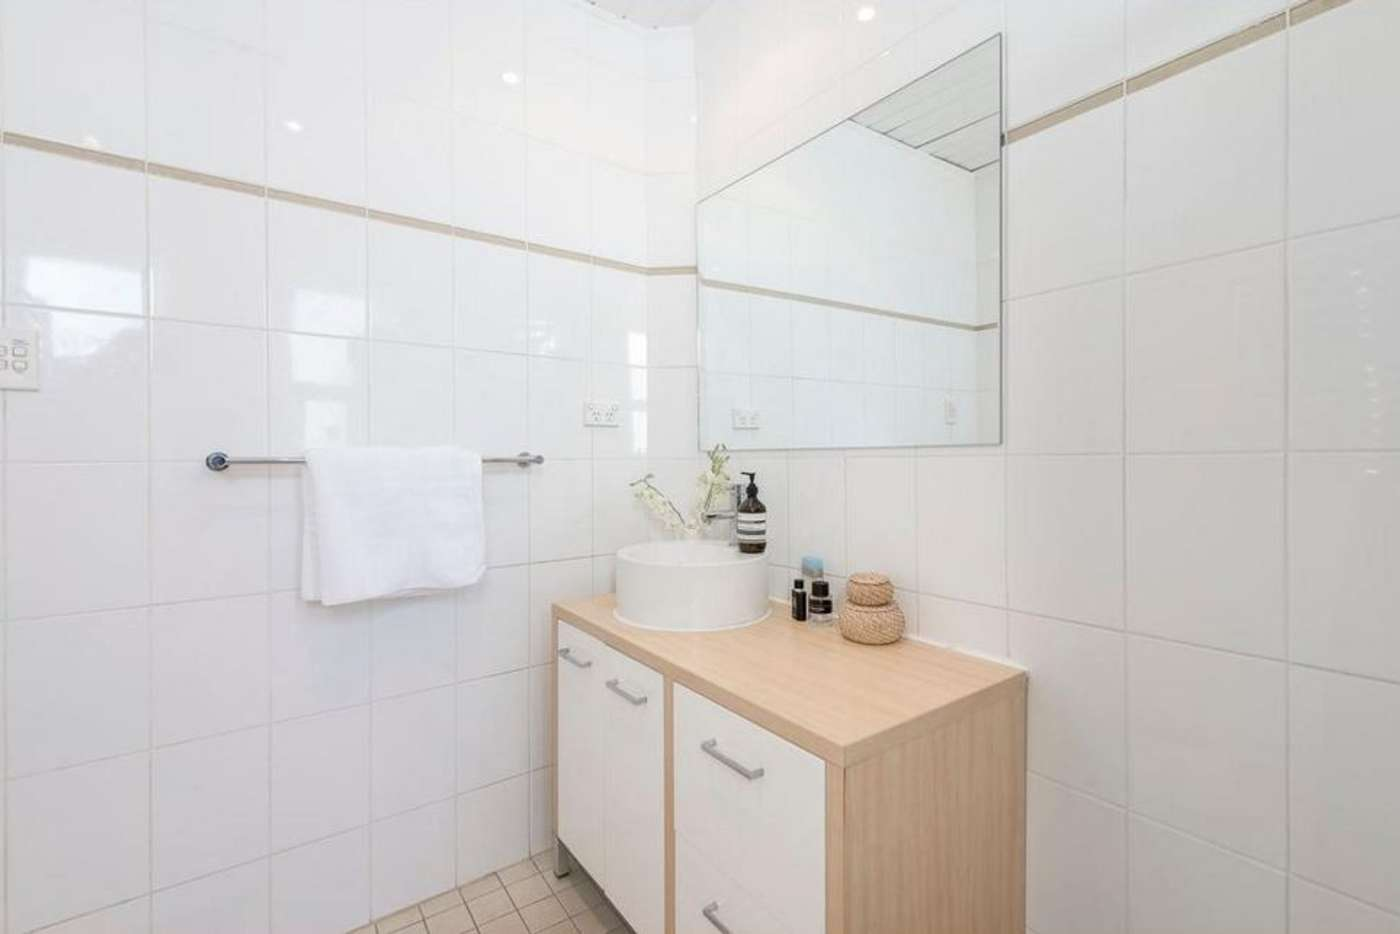 Sixth view of Homely apartment listing, 5/266 Campbell Parade, Bondi Beach NSW 2026